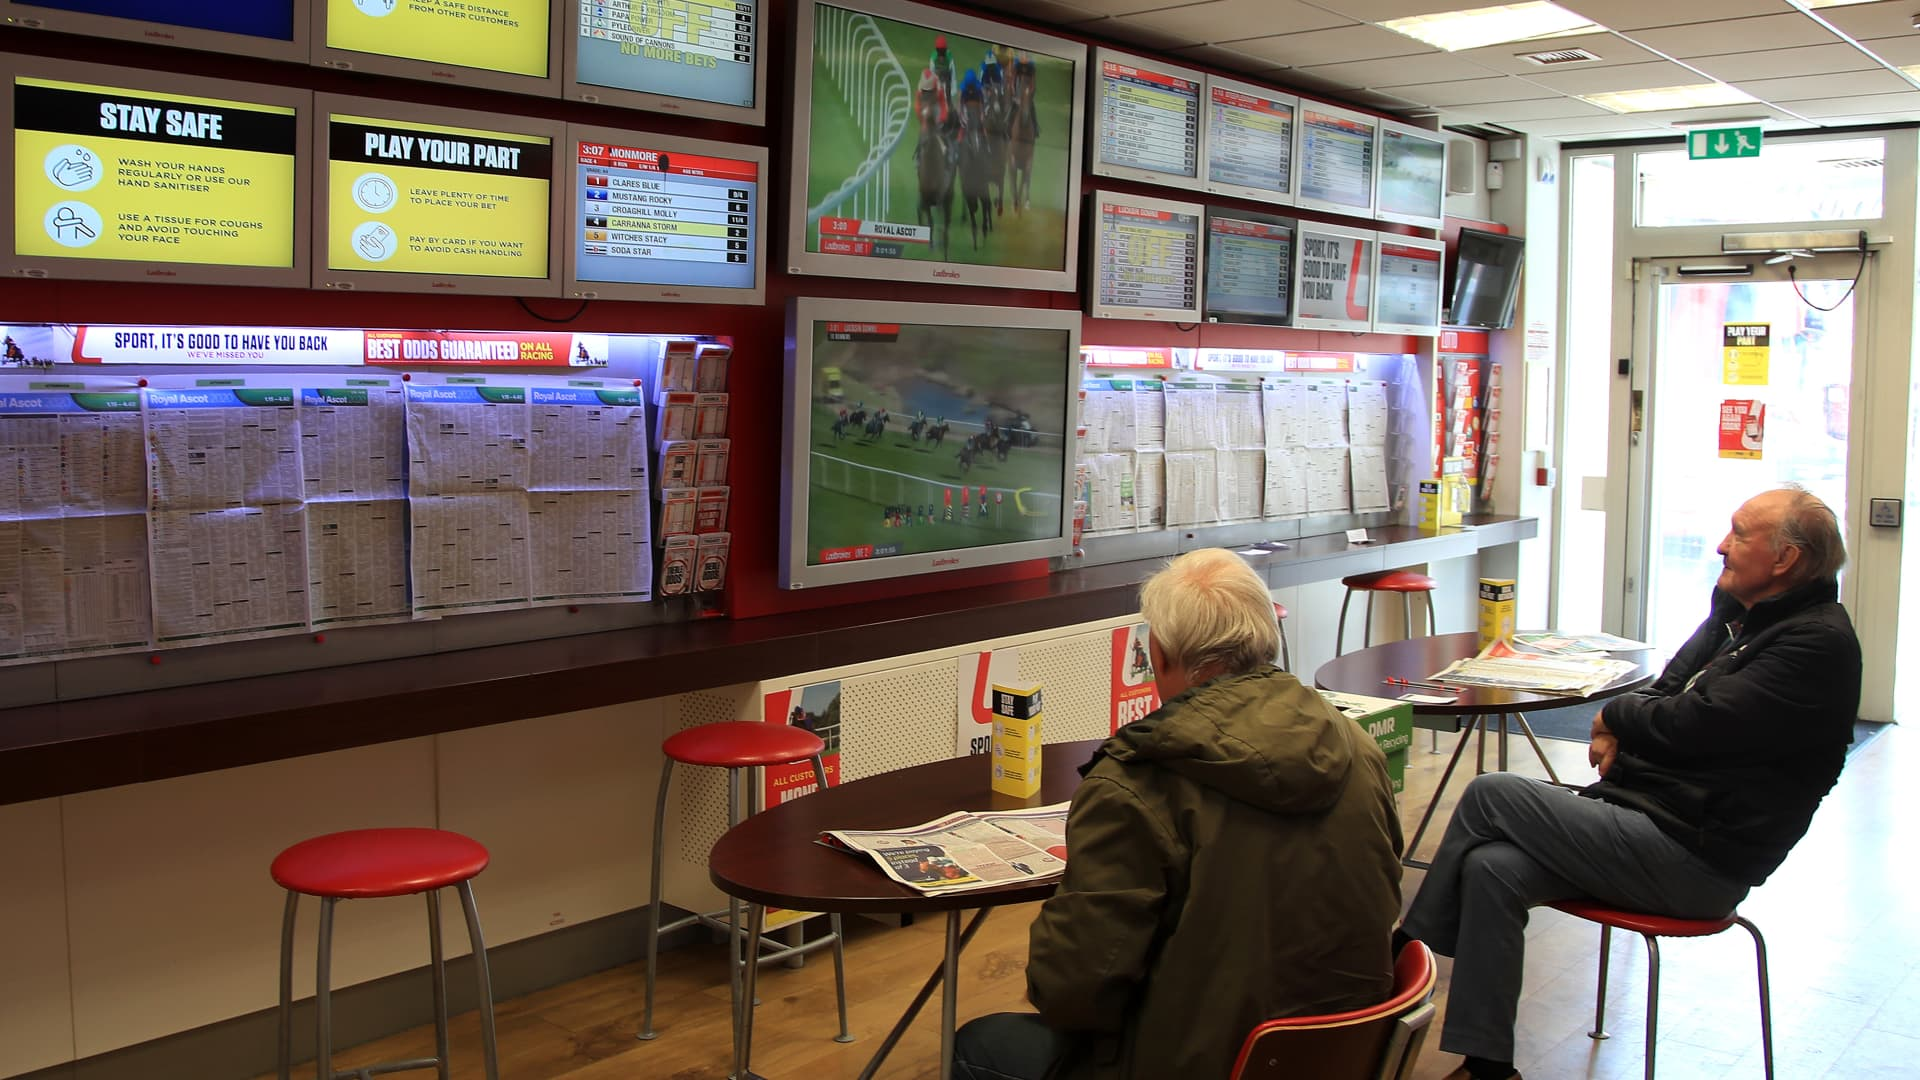 LONDON, ENGLAND - JUNE 16: A general view inside the Ladbrokes betting shop on Putney High Street as betting shops reopen ahead of Royal Ascot on June 16, 2020